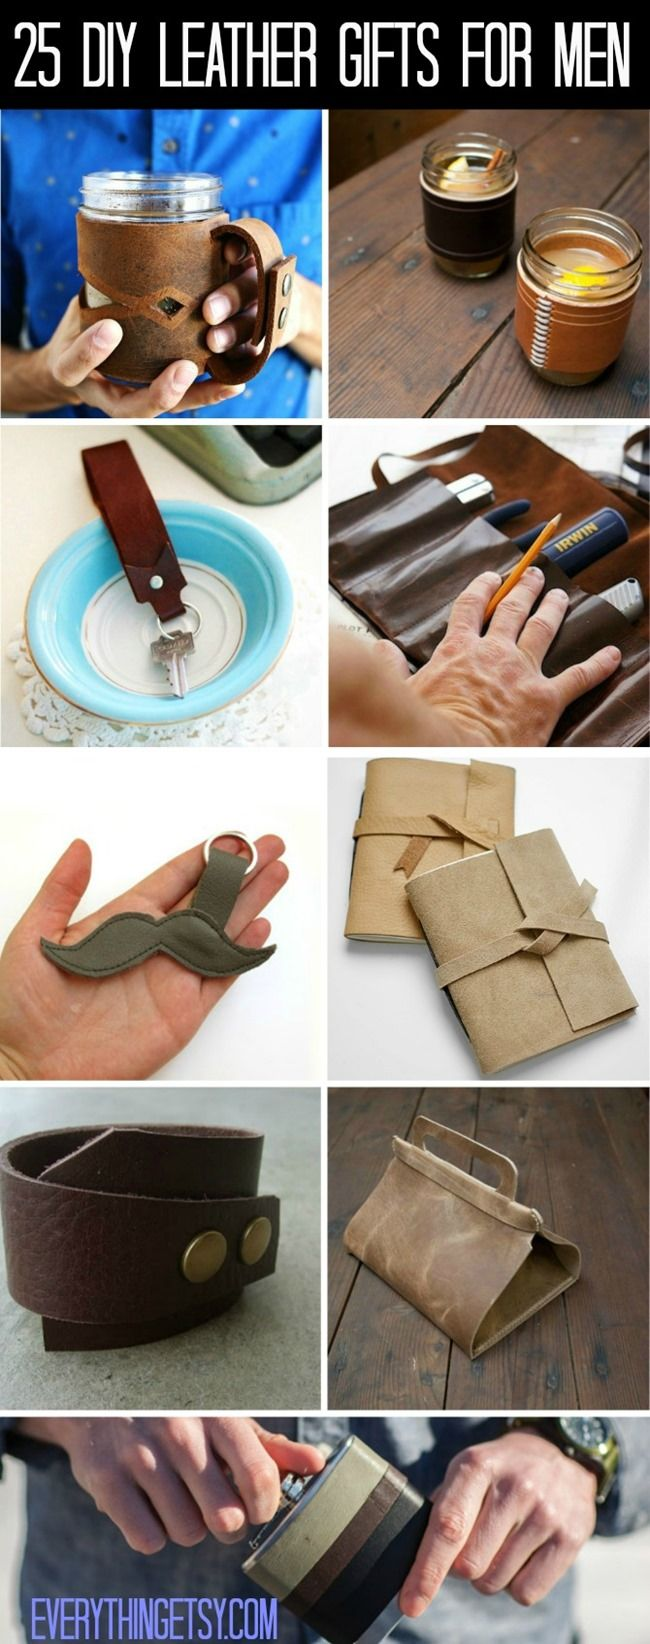 34++ Diy leather craft projects ideas